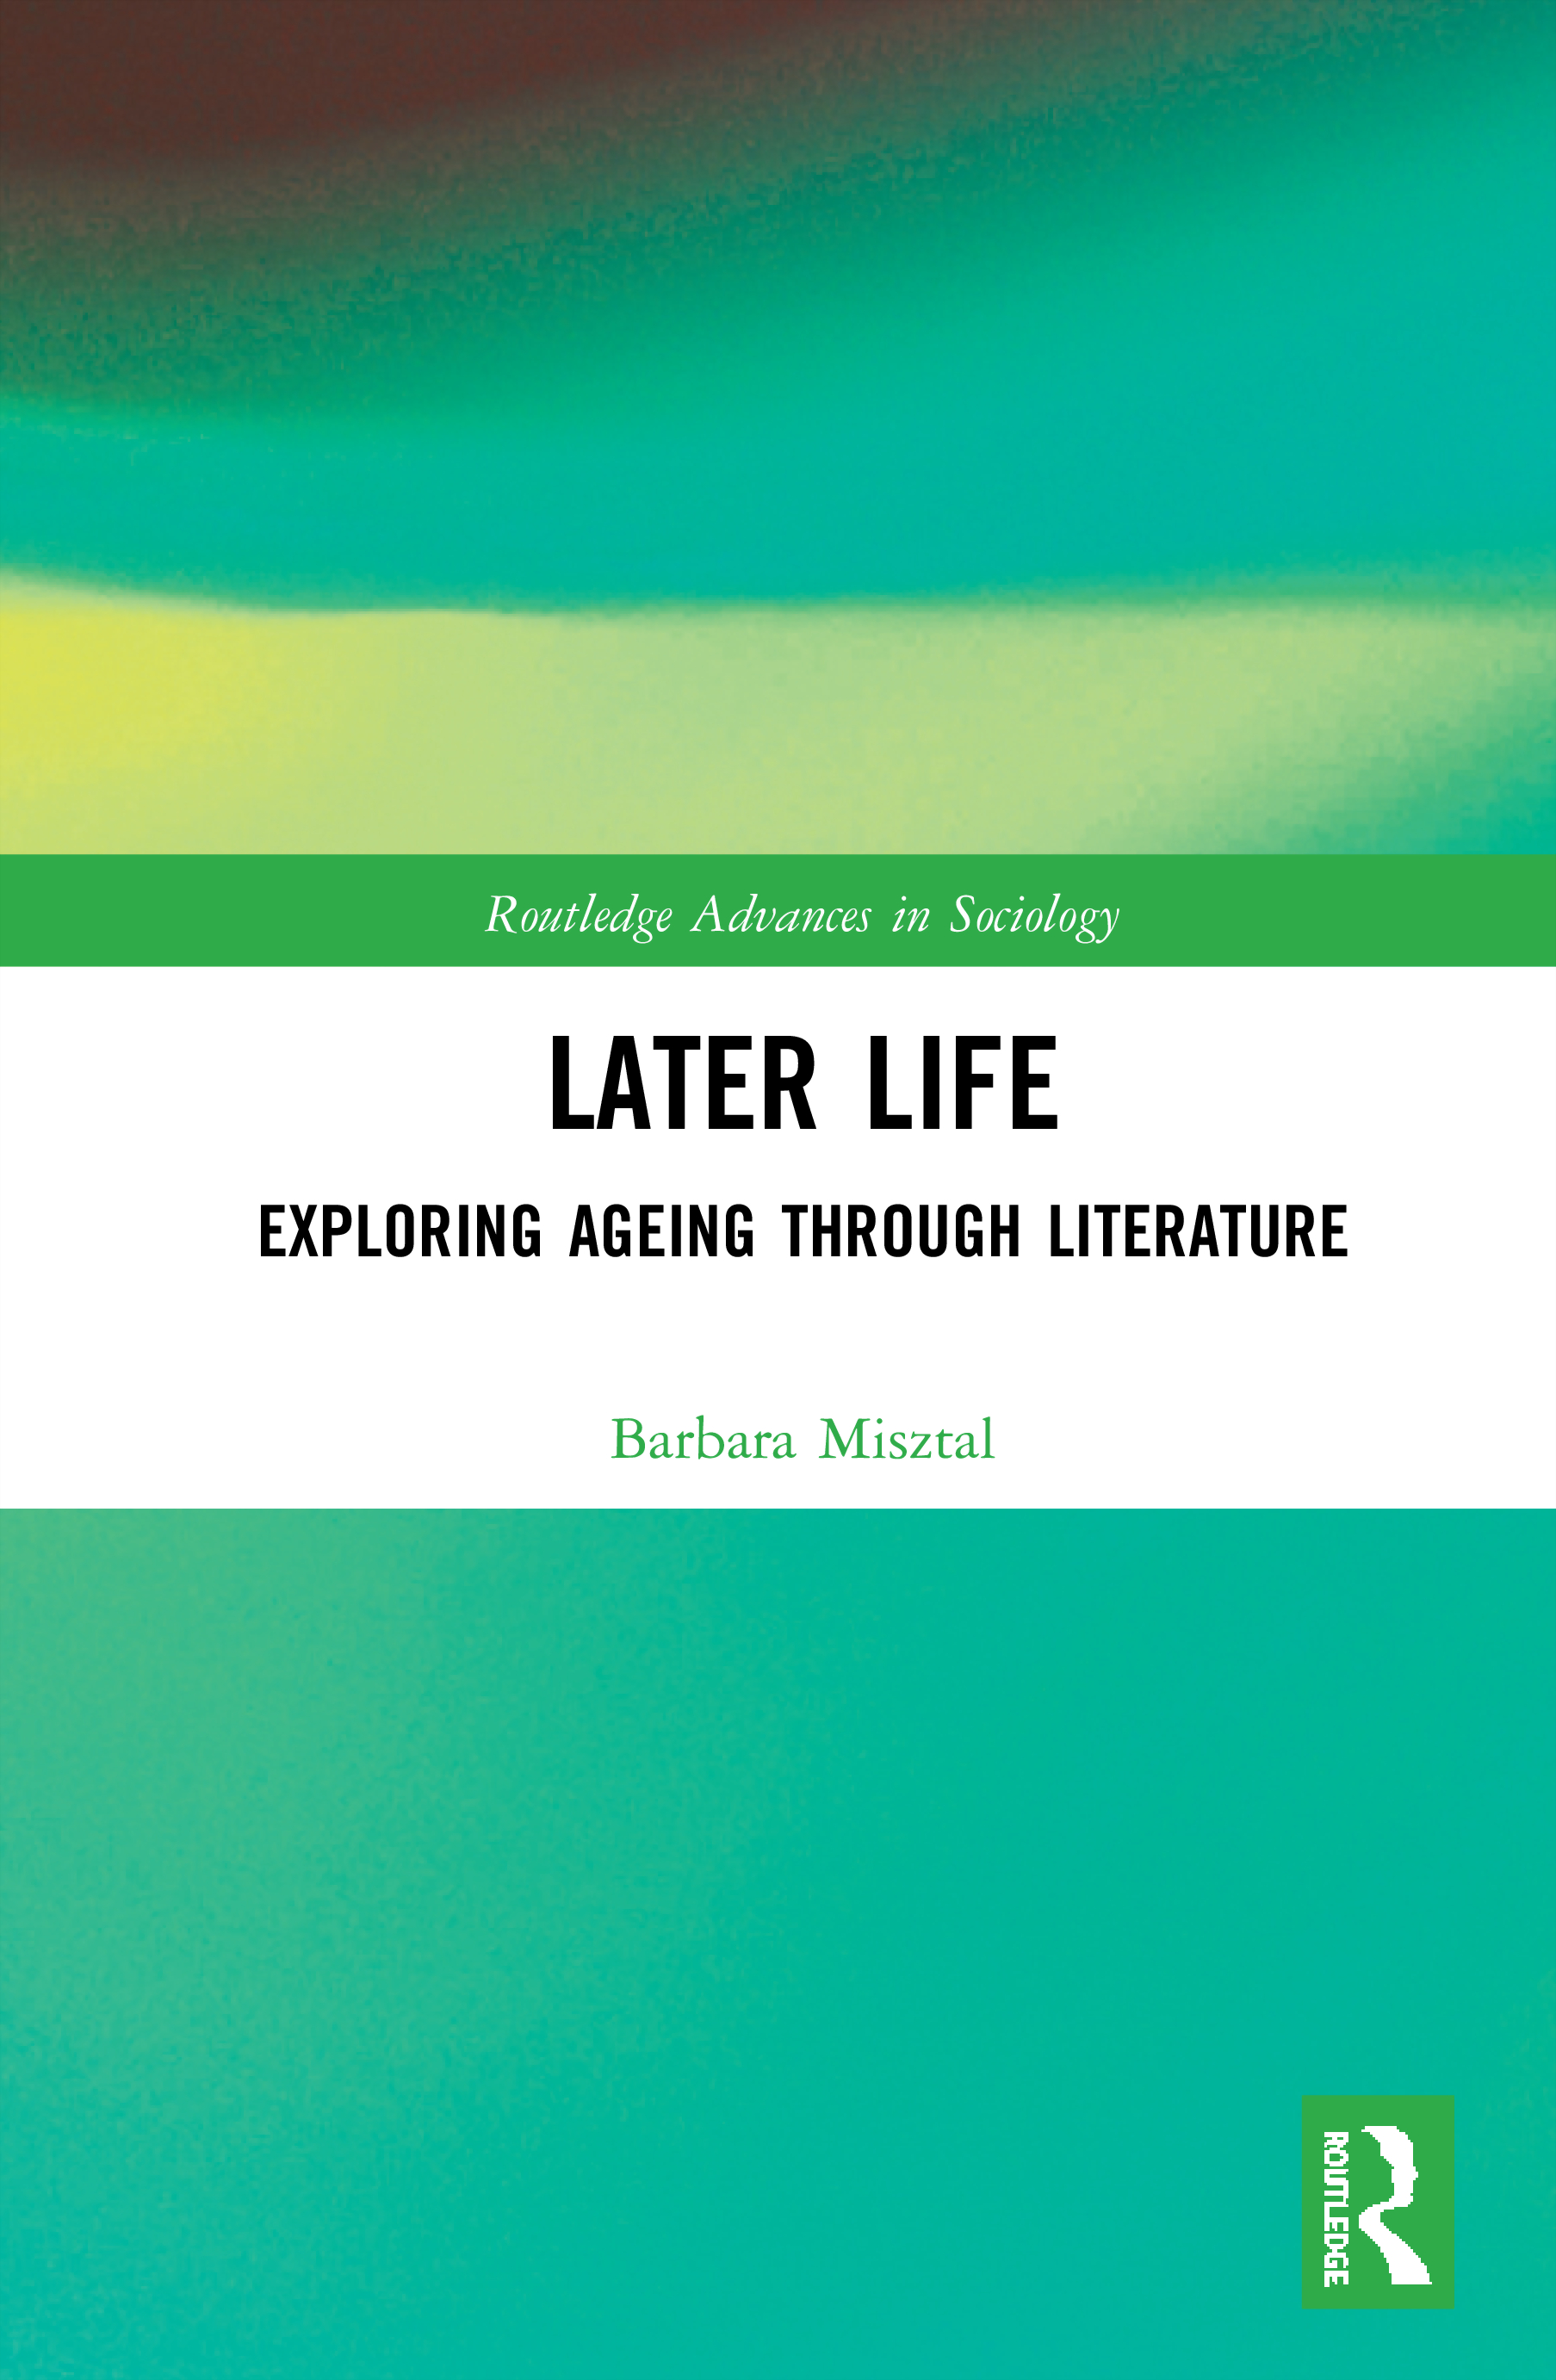 Later Life: Exploring Aging through Literature book cover